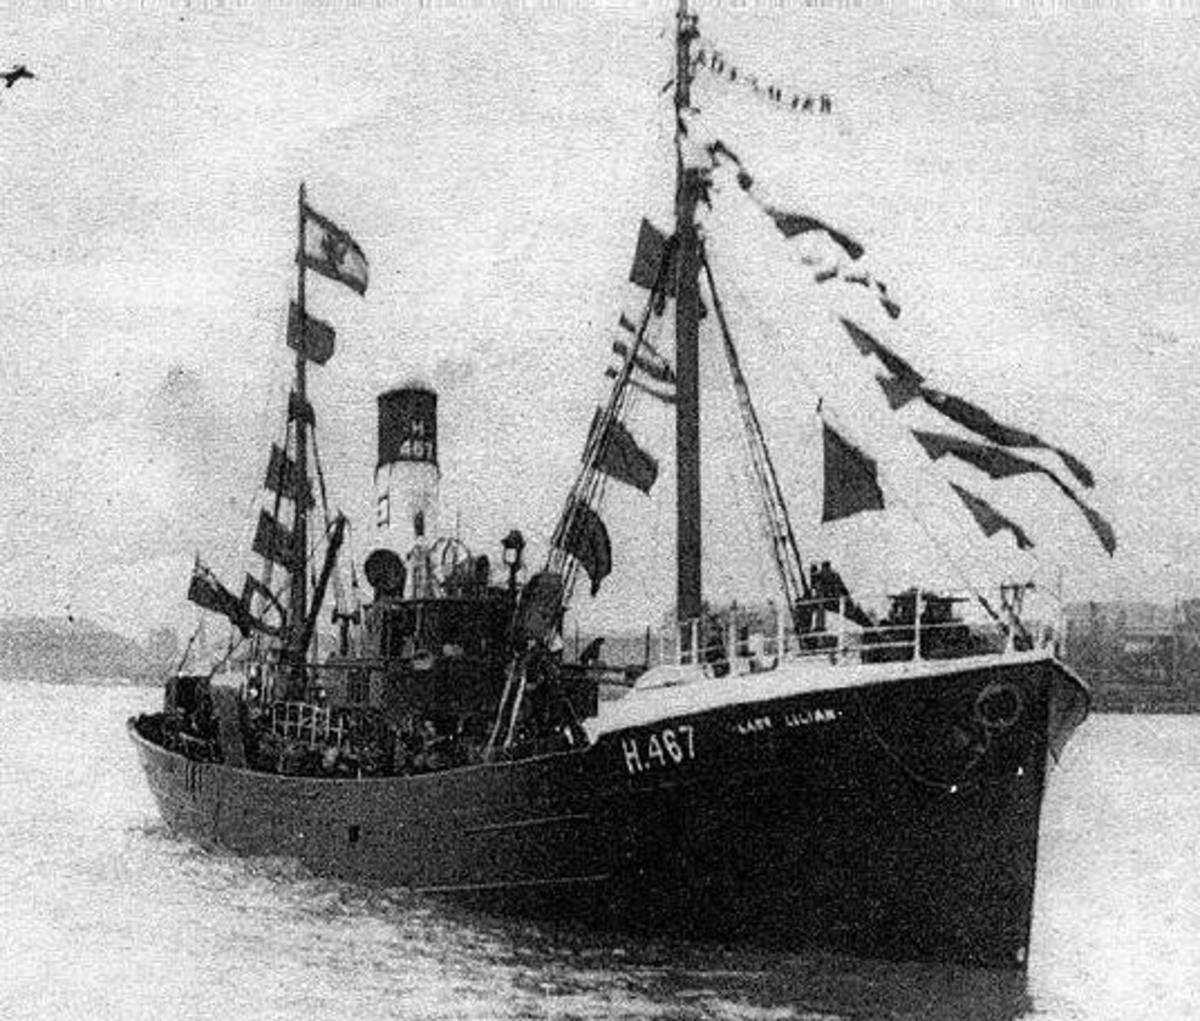 HMT Lady Lilianorway